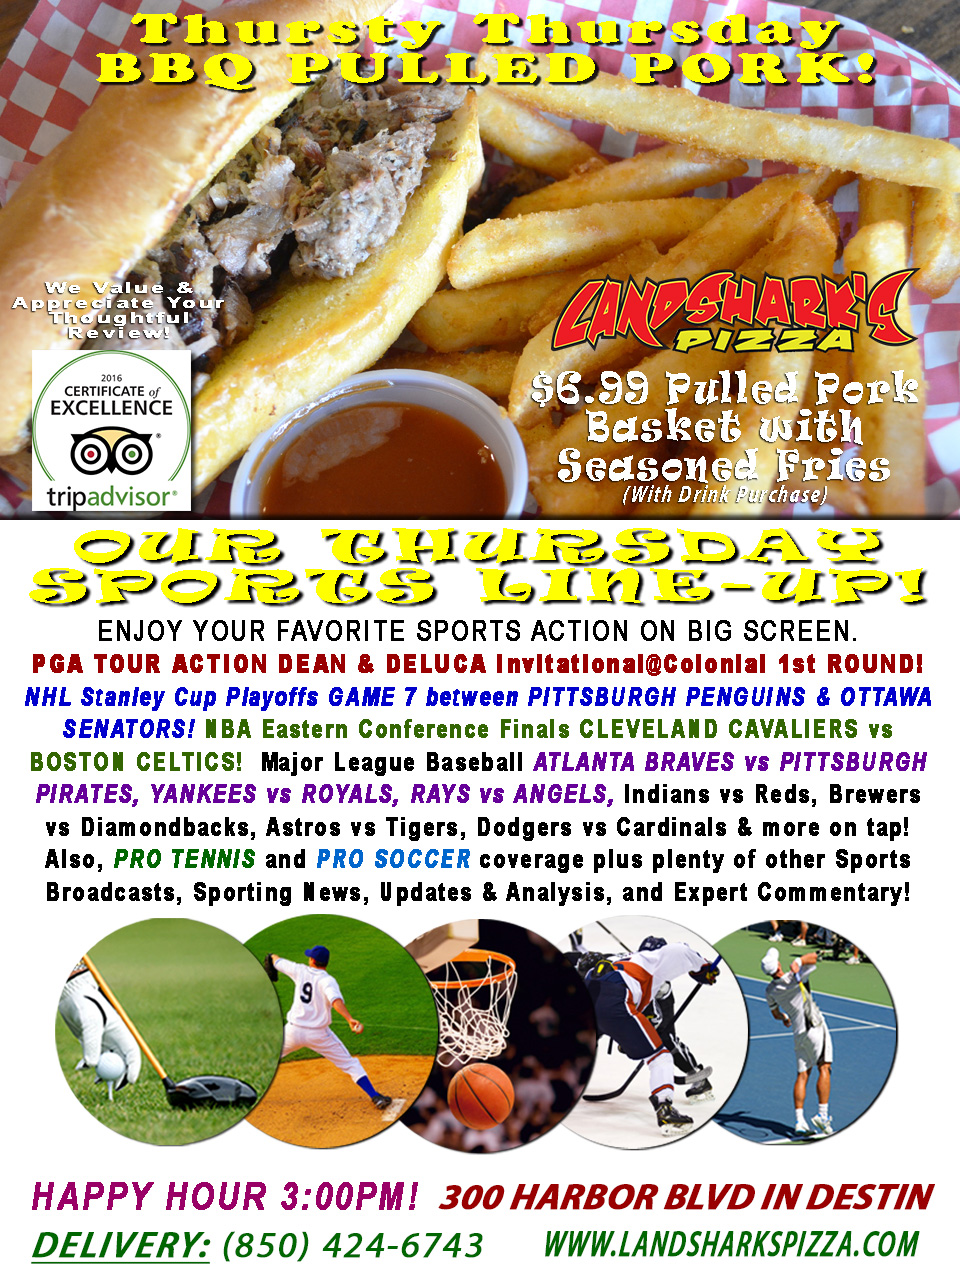 PGA DEAN & DELUCA, NHL & NBA Playoffs, MLB & Destin's BEST TRADITIONAL BBQ Basket only $6.99!